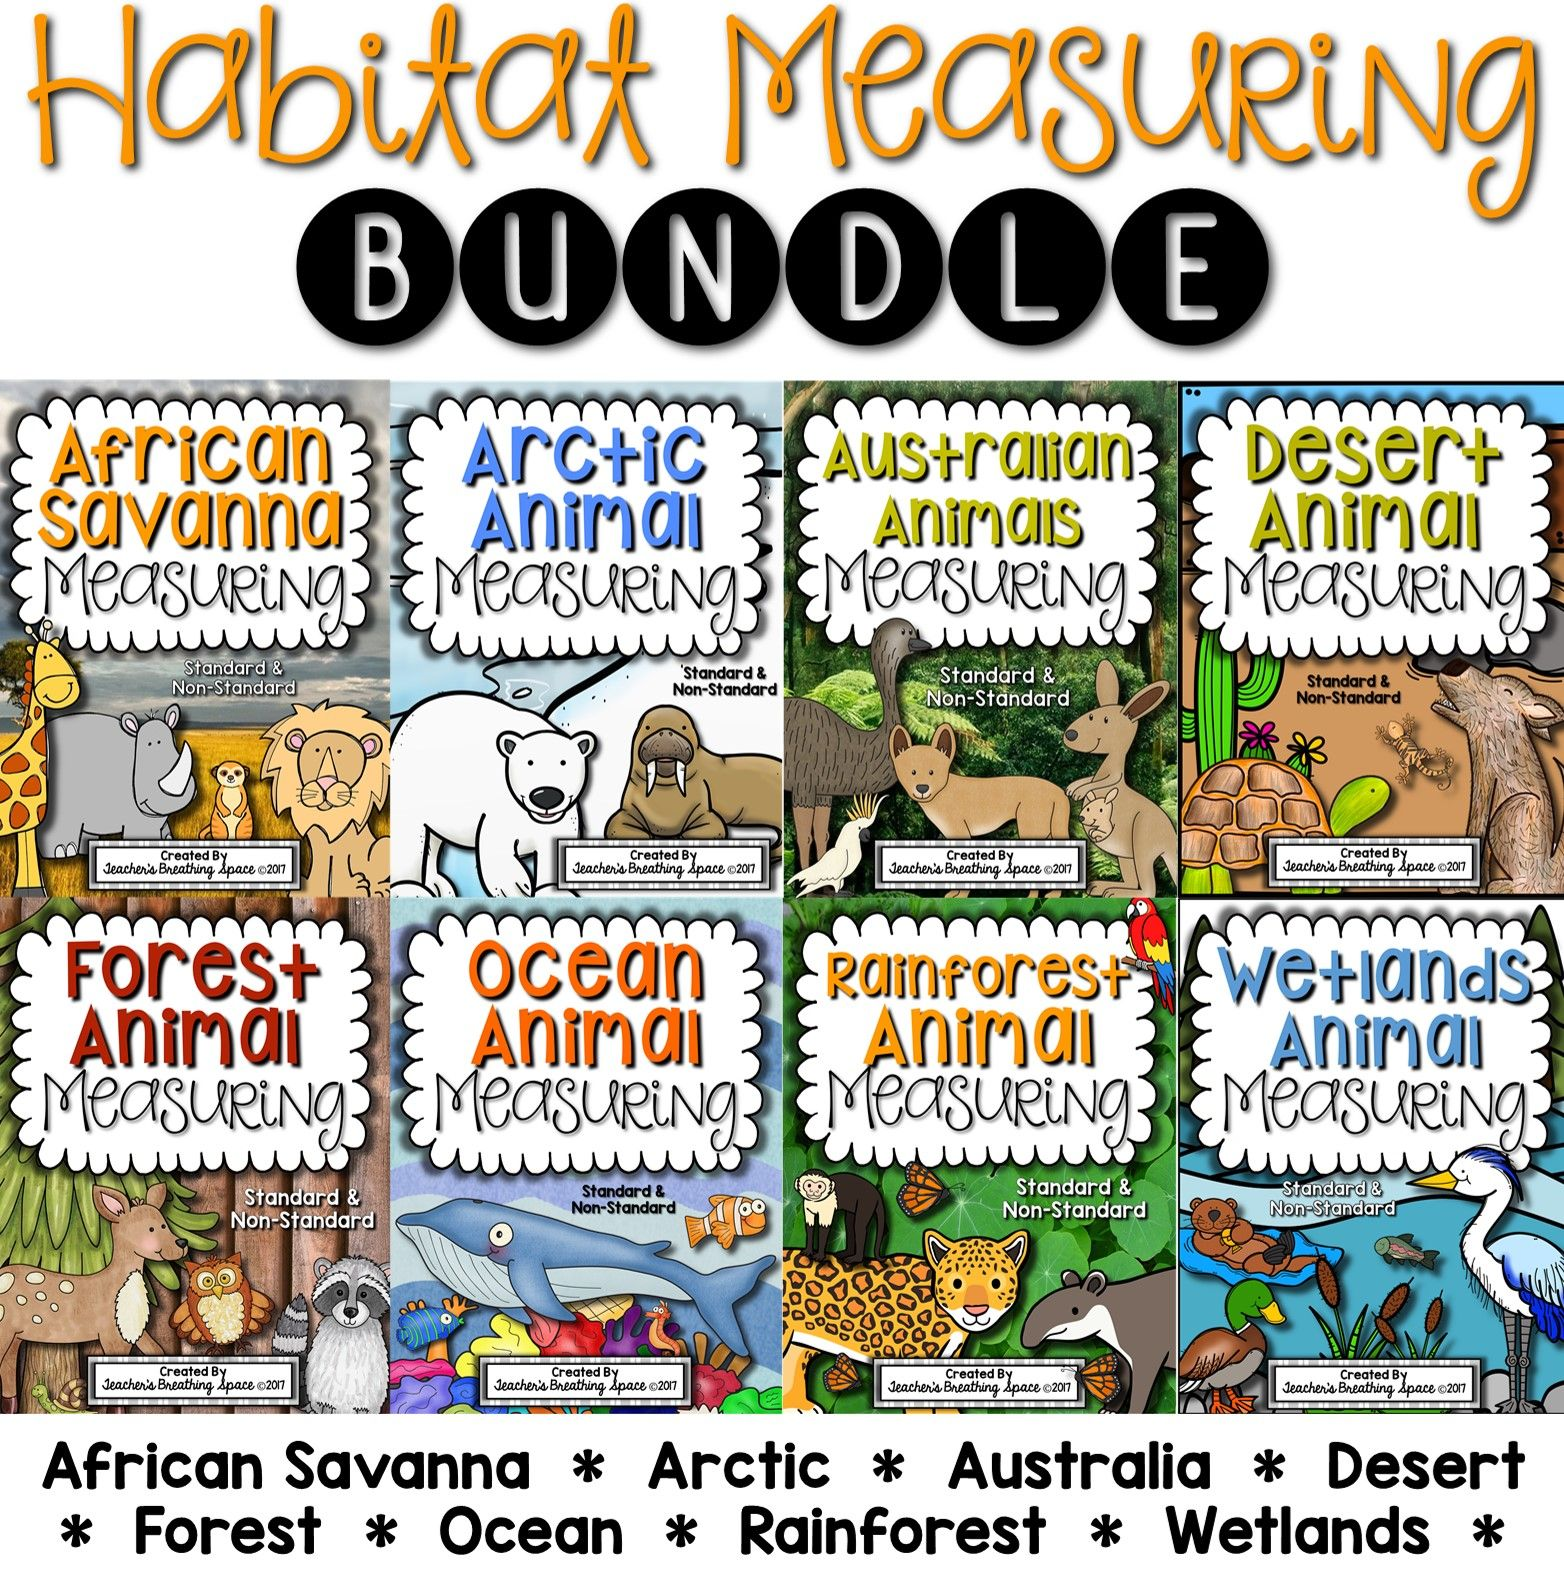 Habitat Measuring Bundle Includes Measuring Books And